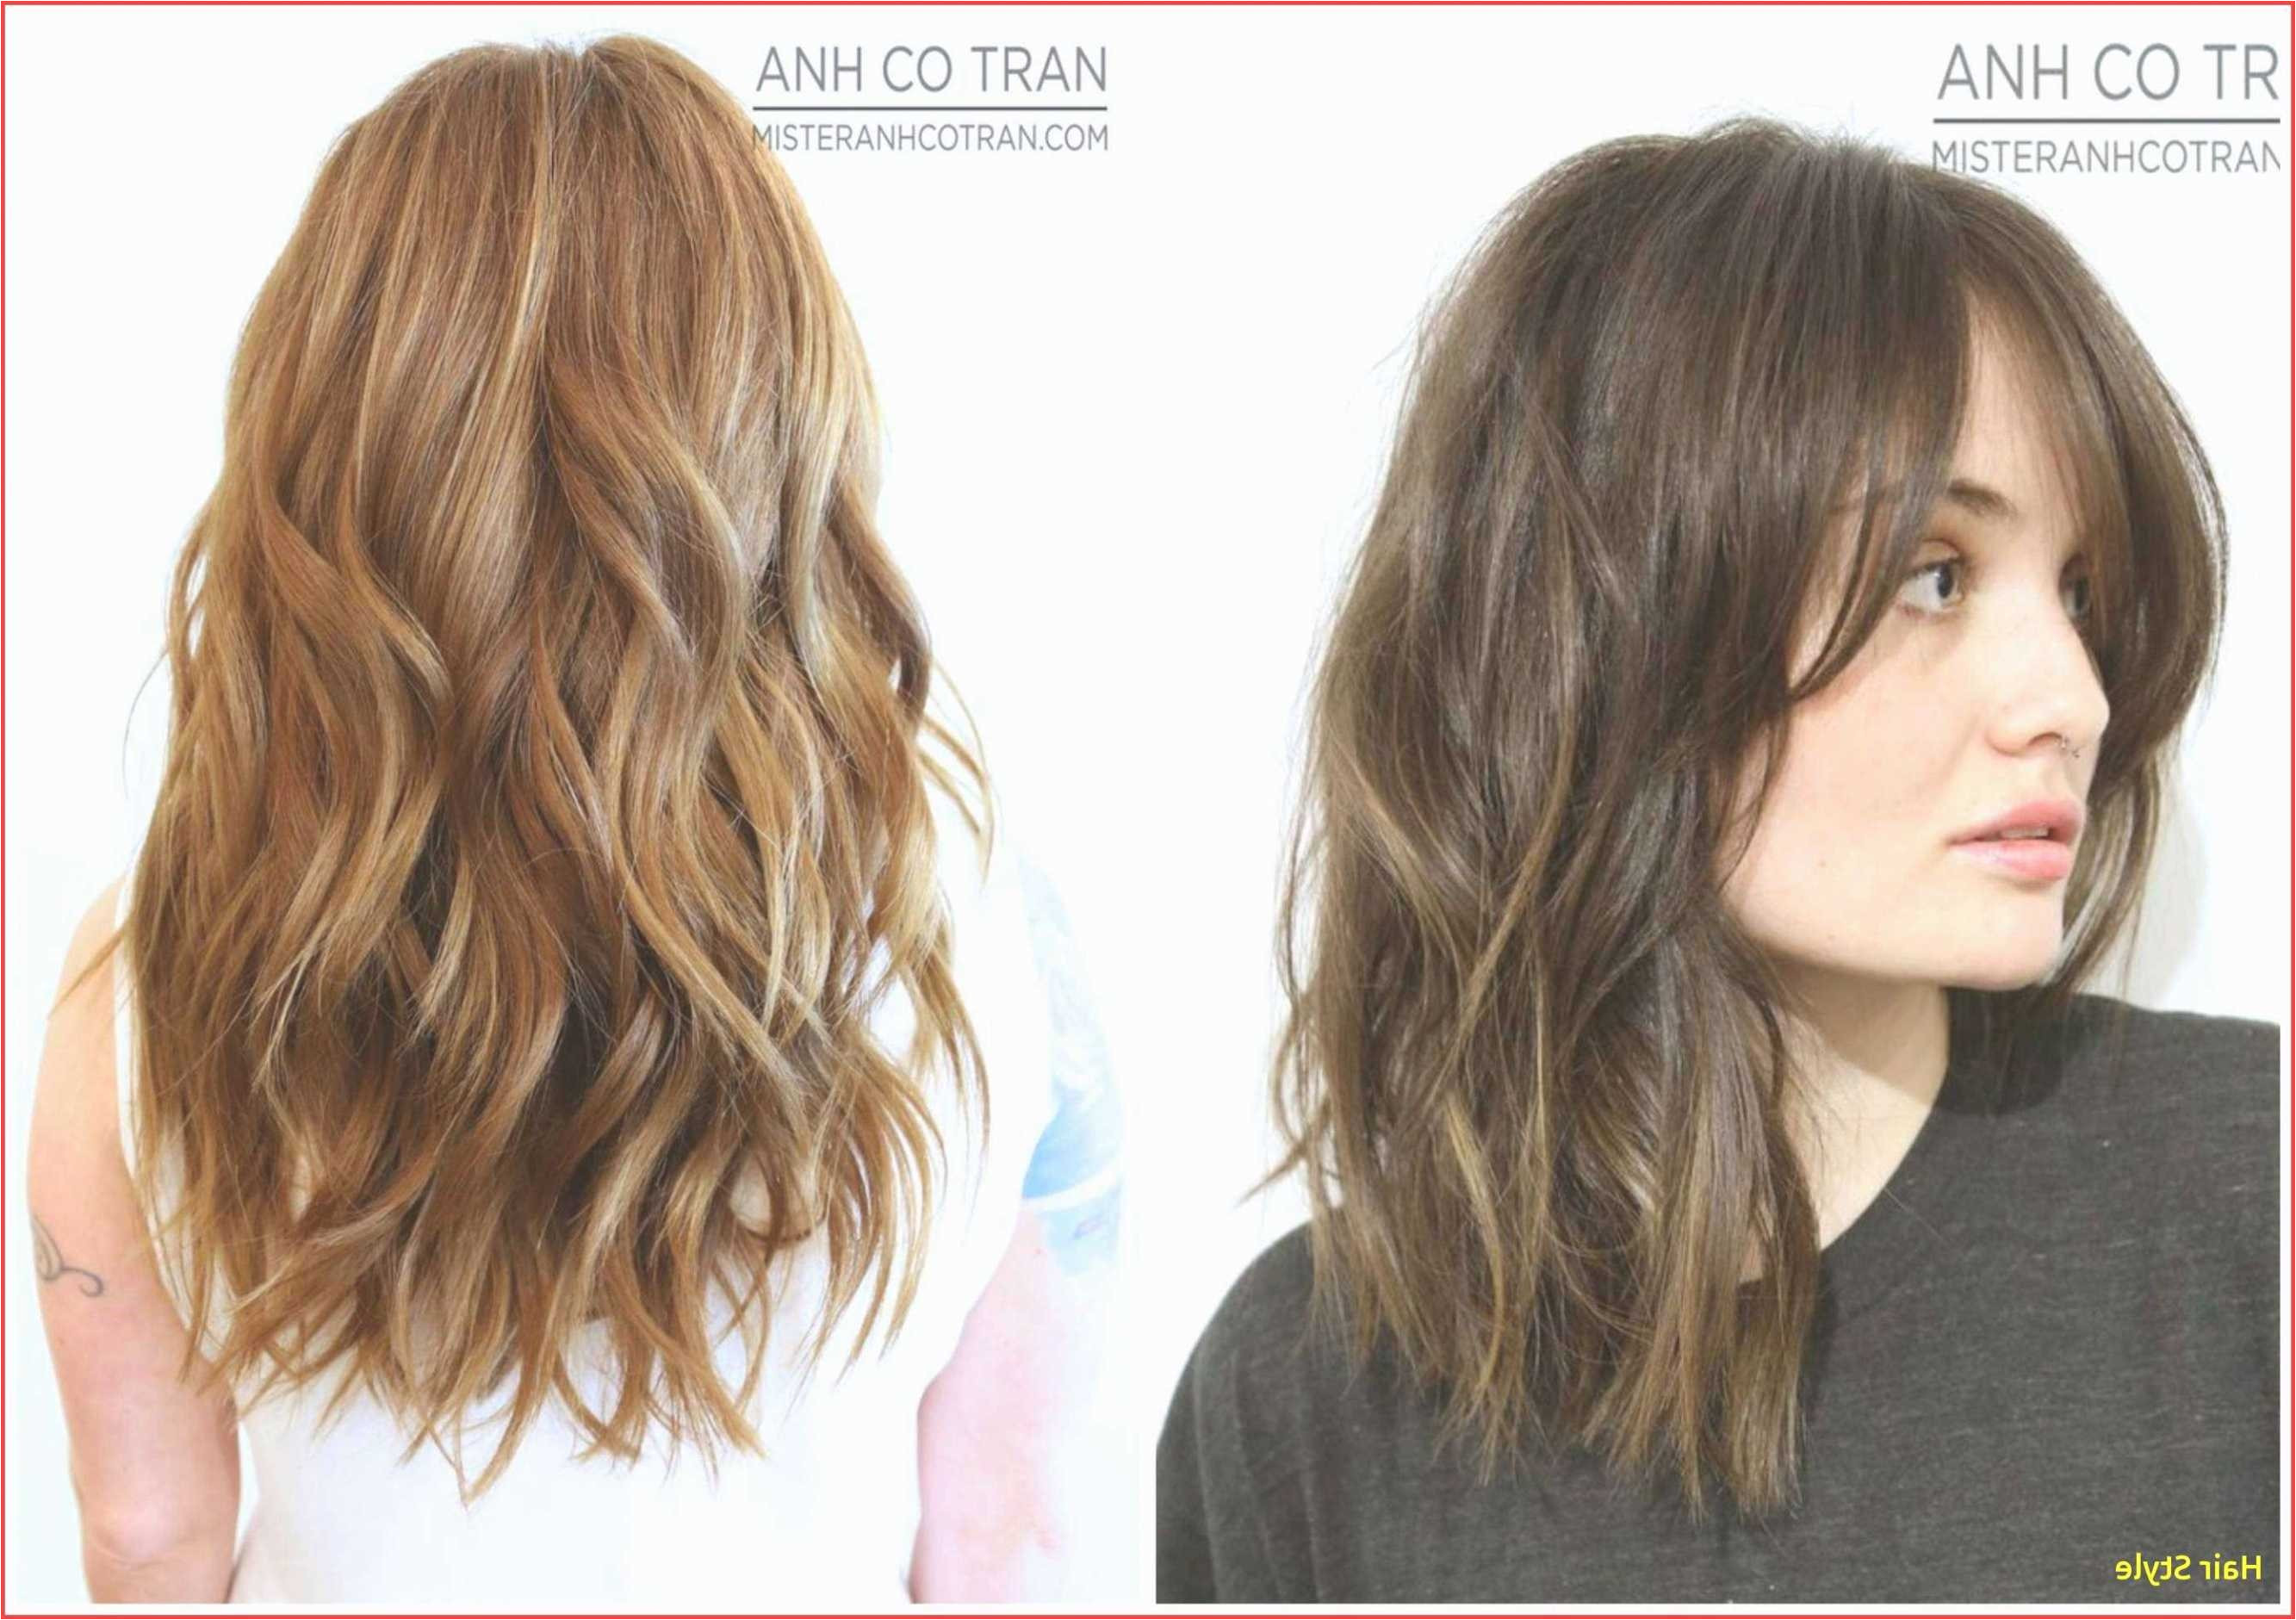 Hairstyles for Long asian Hair Lovely New Short Wavy asian Hairstyles – Uternity Hairstyles for